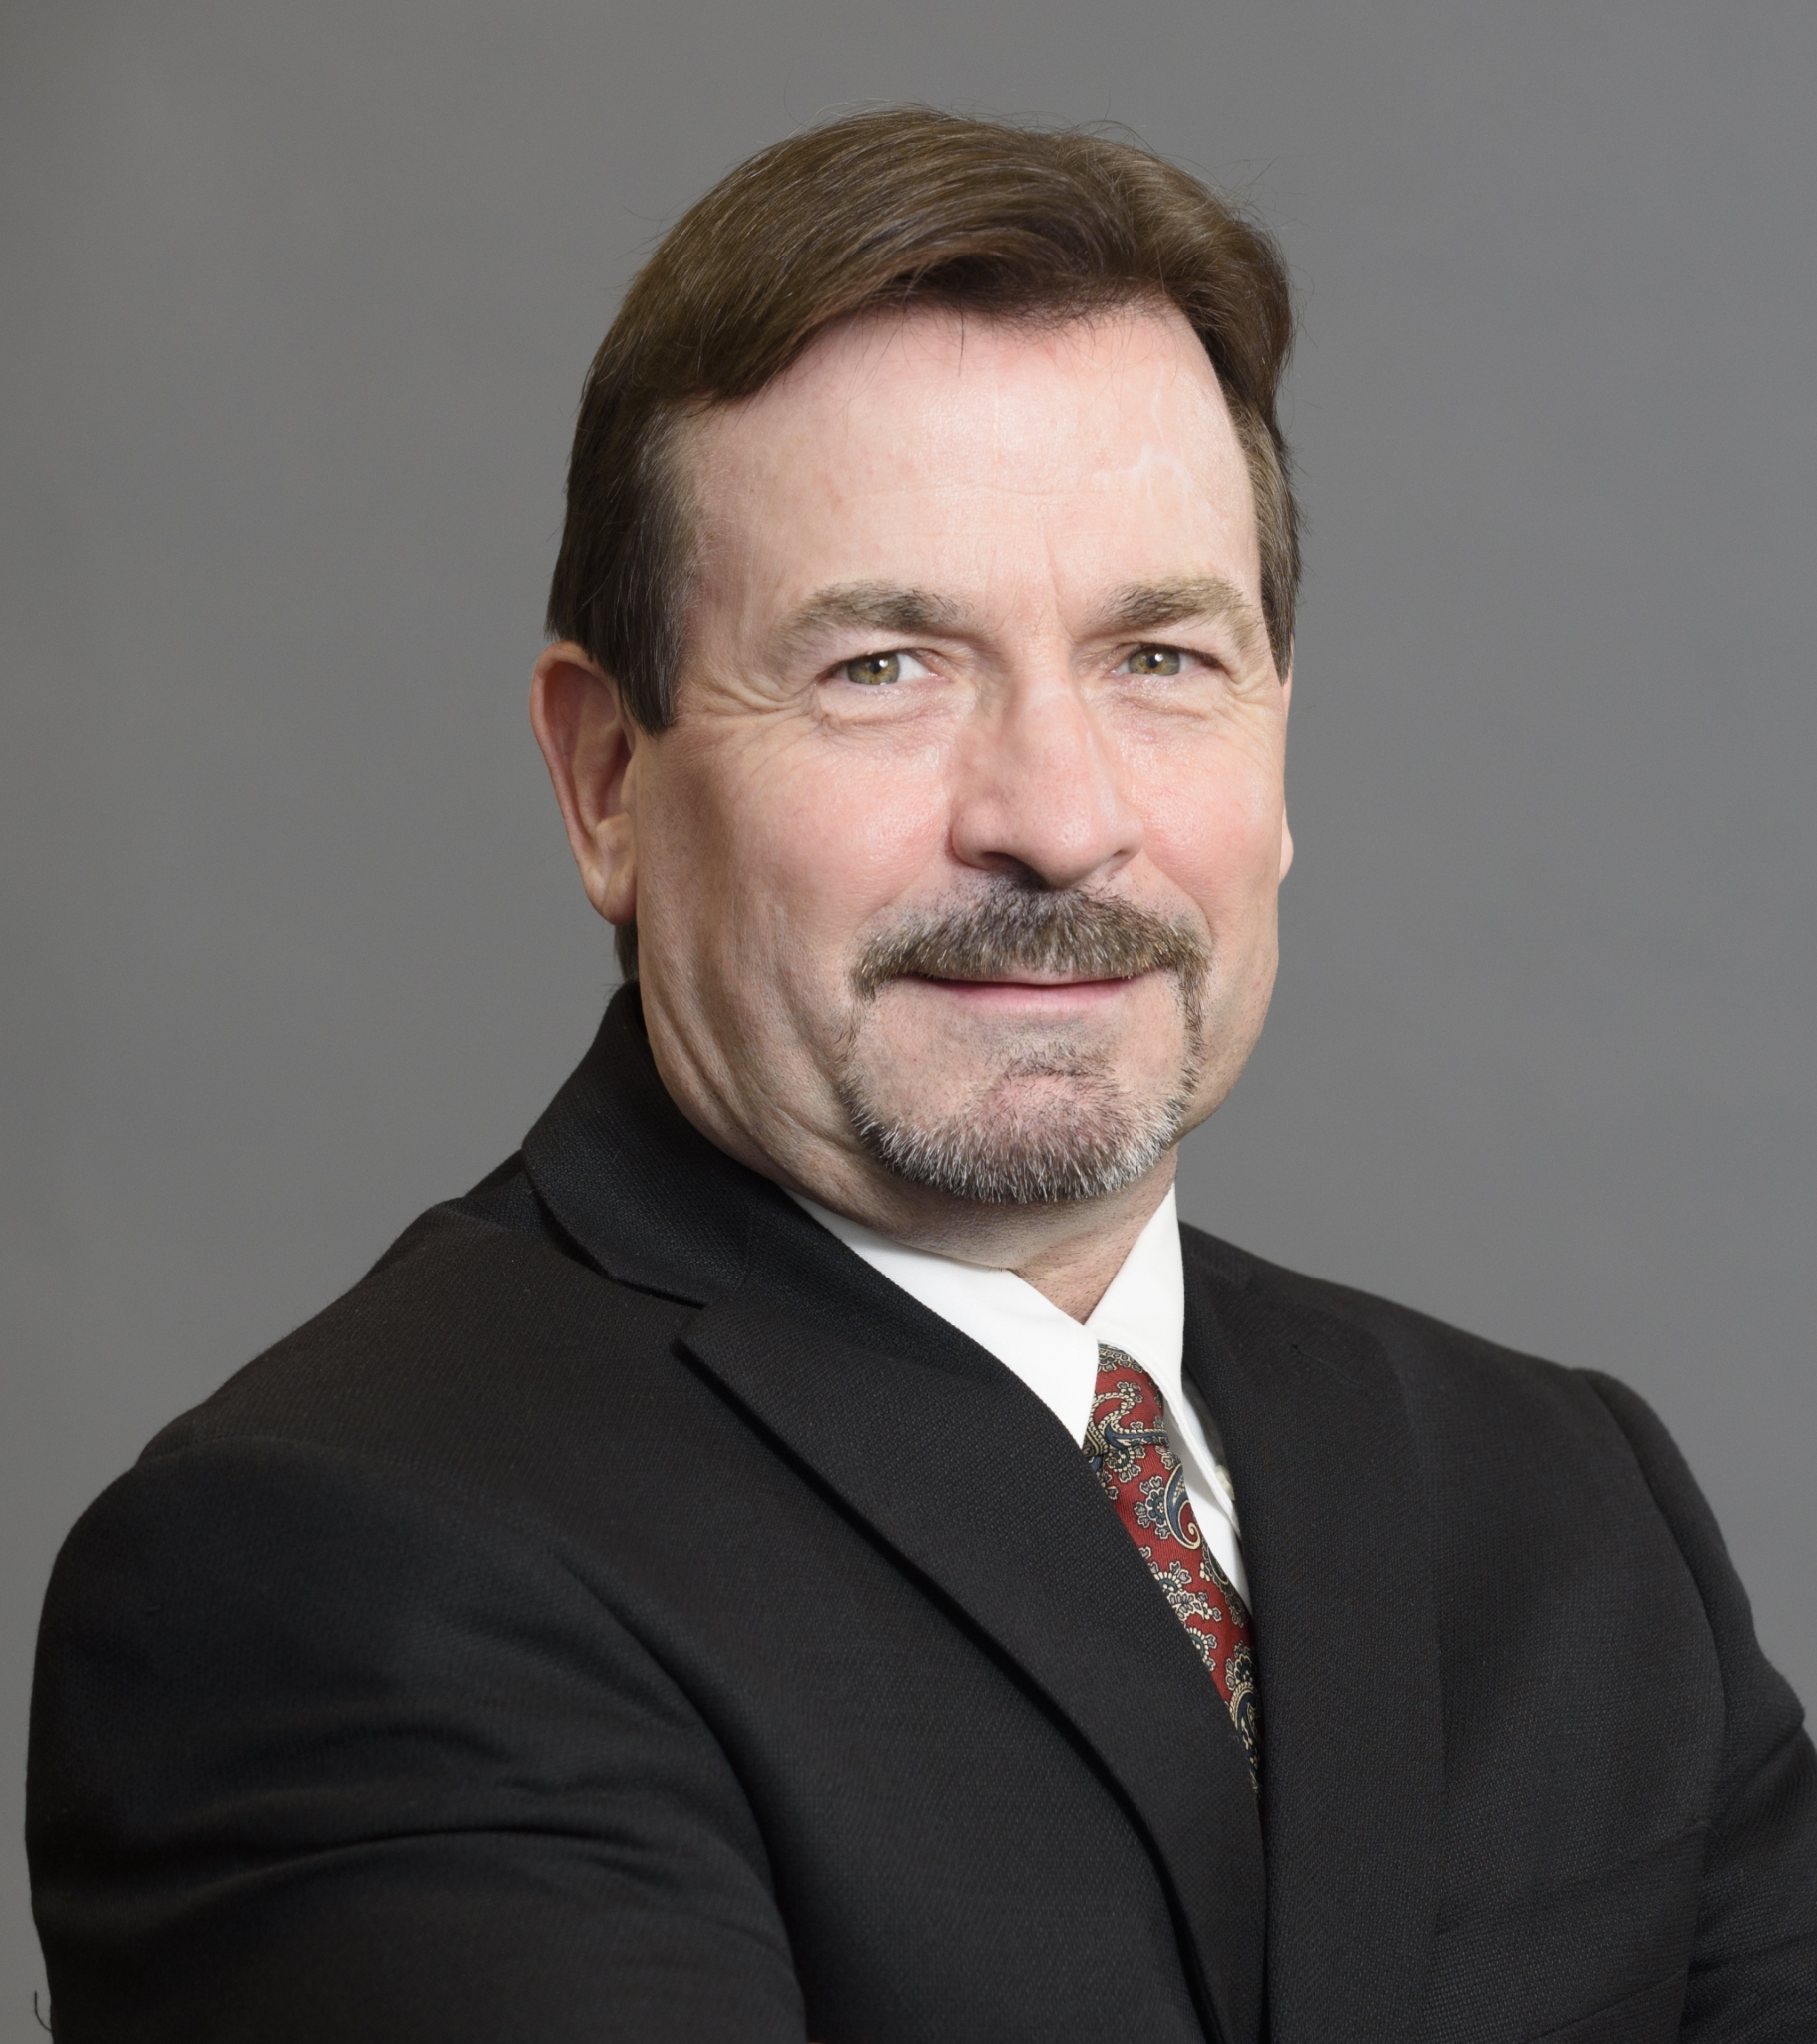 Headshot of Larry Sawatsky, Director of Finance